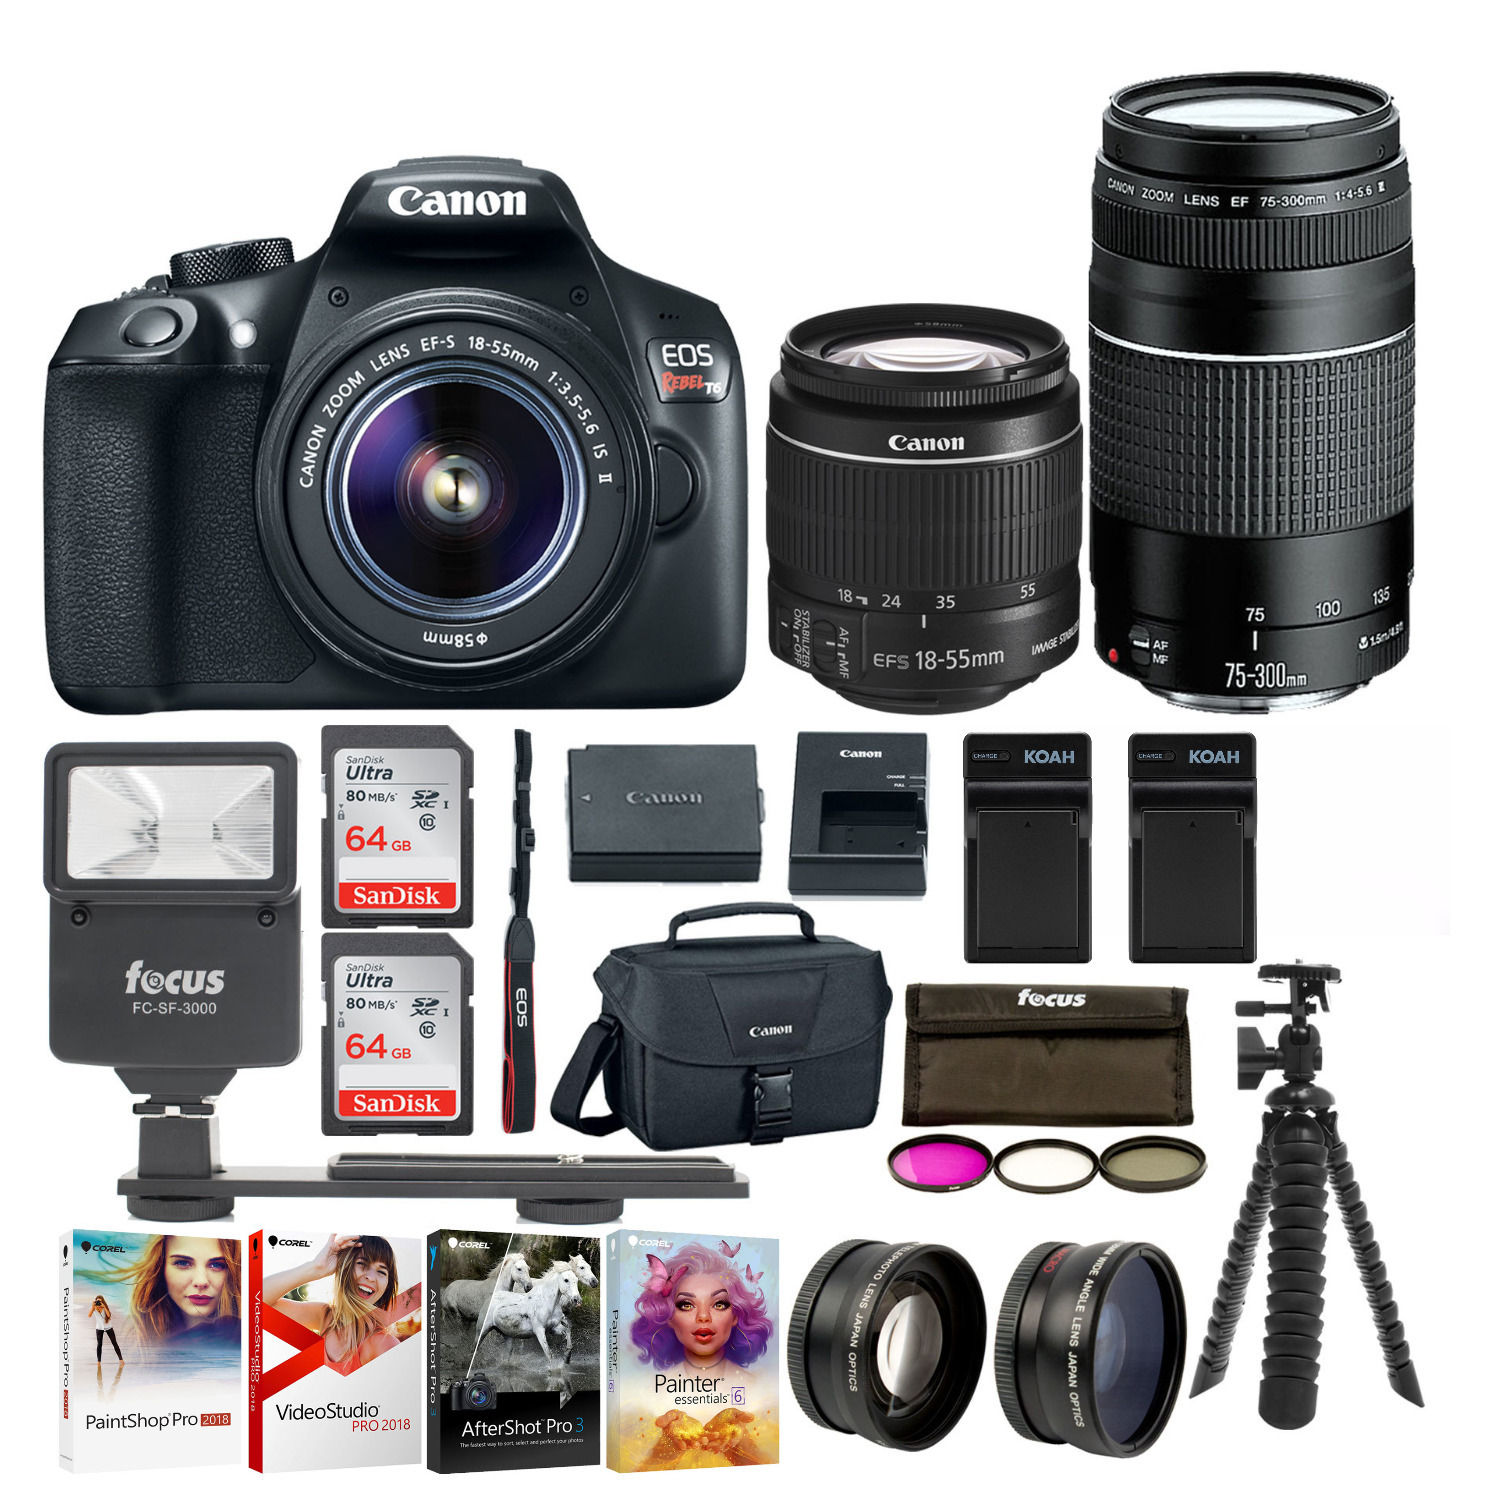 Canon EOS Rebel T6 DSLR Camera with EF-S 18-55mm and EF 75-300mm Lens Bundle